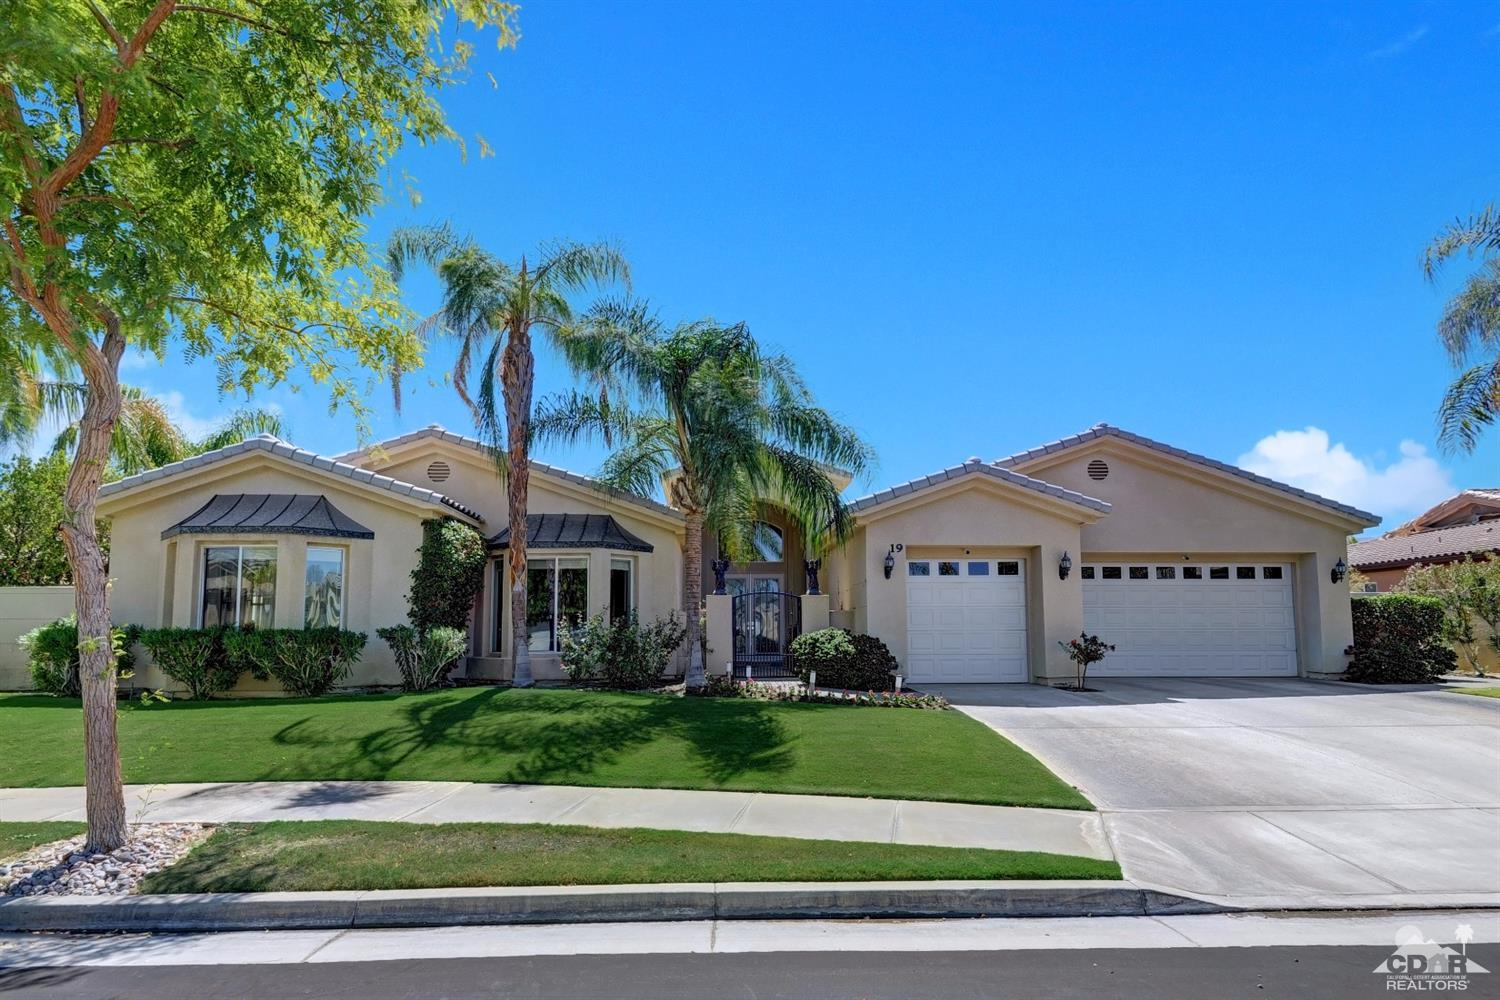 19 Buckingham Way, Rancho Mirage, CA 92270